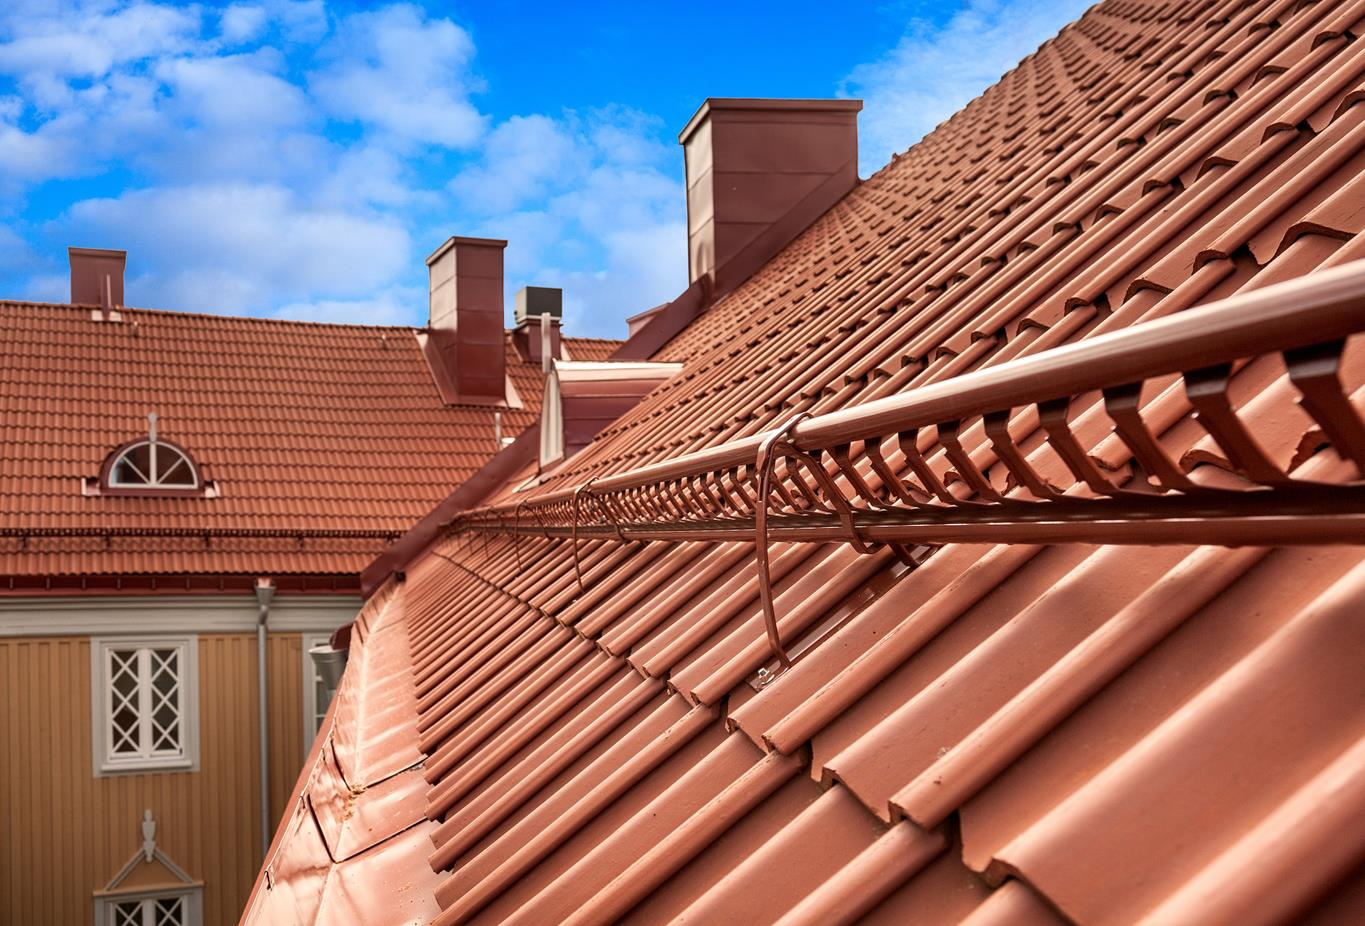 Pitched roof with clay tiles